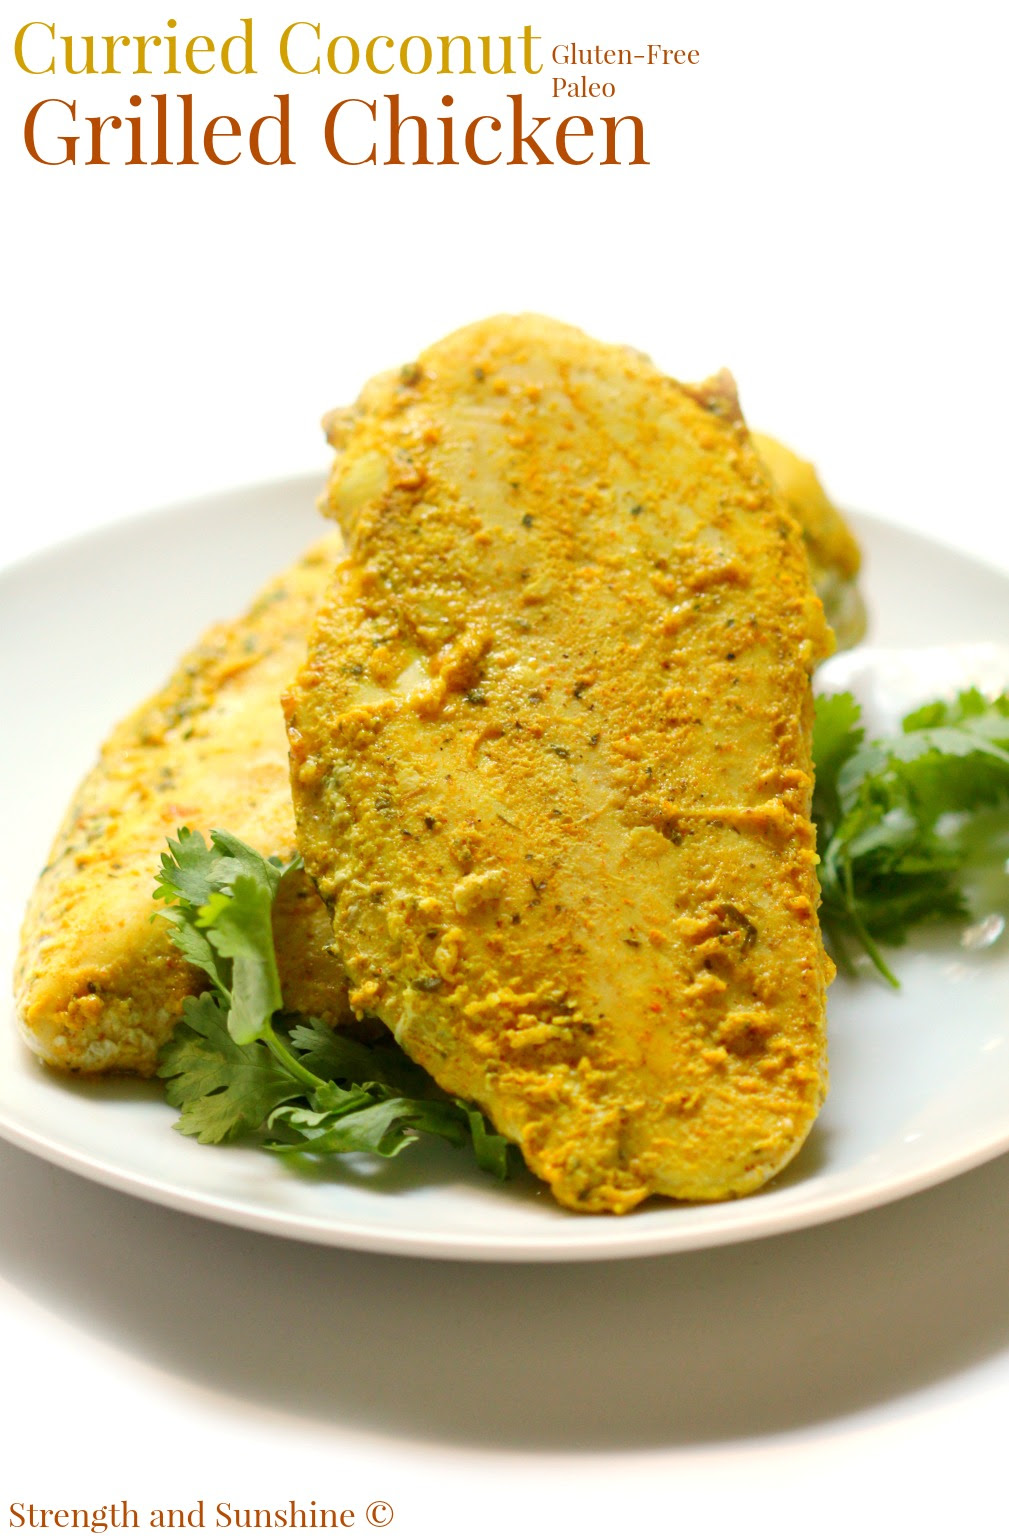 Curried Coconut Grilled Chicken by Strength and Sunshine